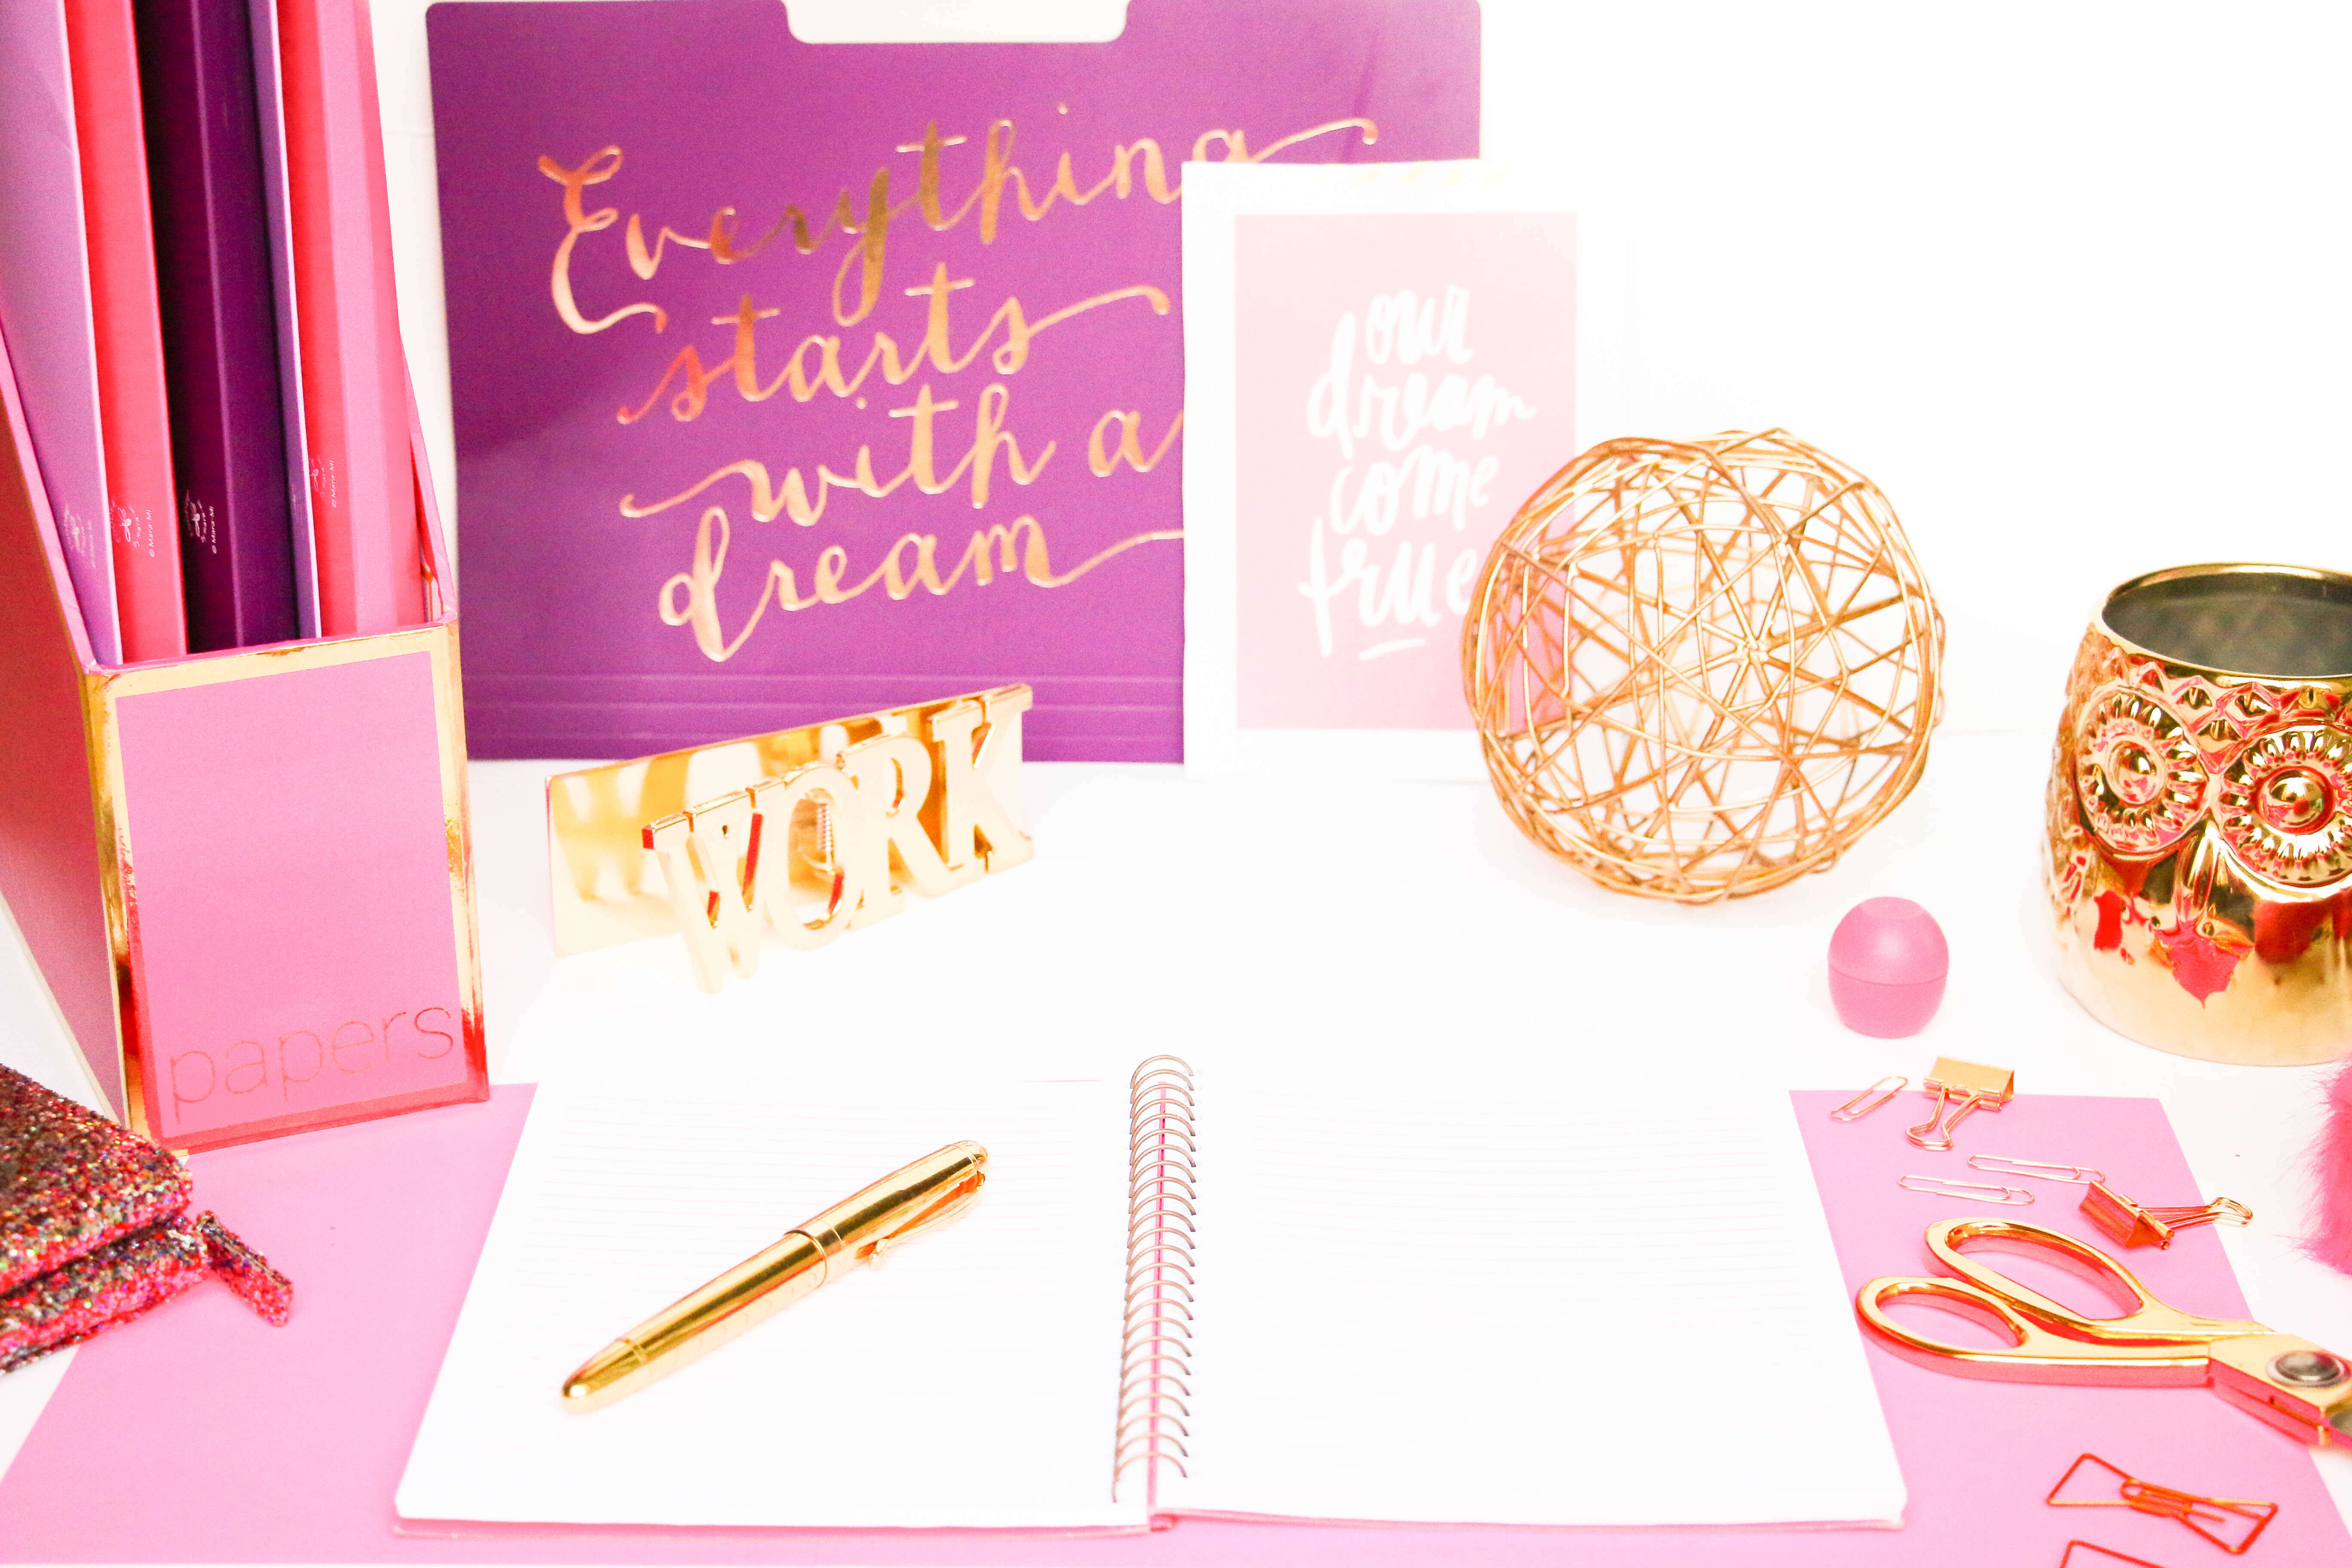 flatlay photo with notebook, pen, ball, work, folder, dreams to reality